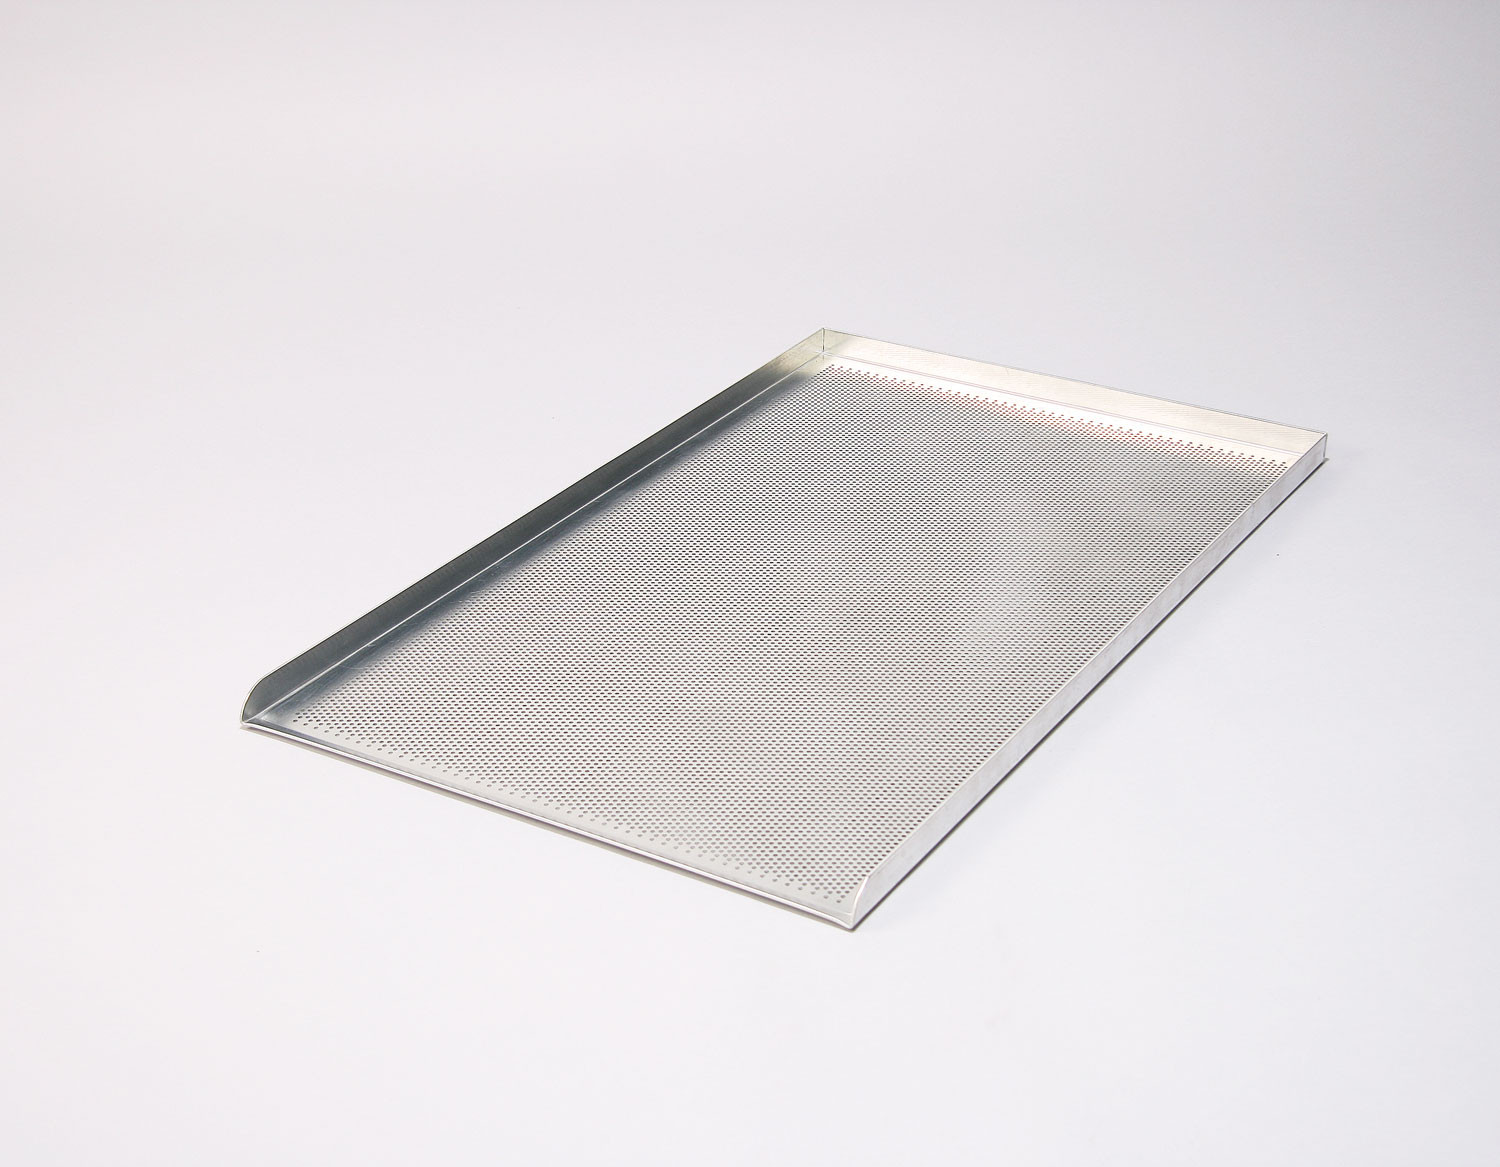 30x18x1 3 Sided Perforated Aluminium Baking Sheets